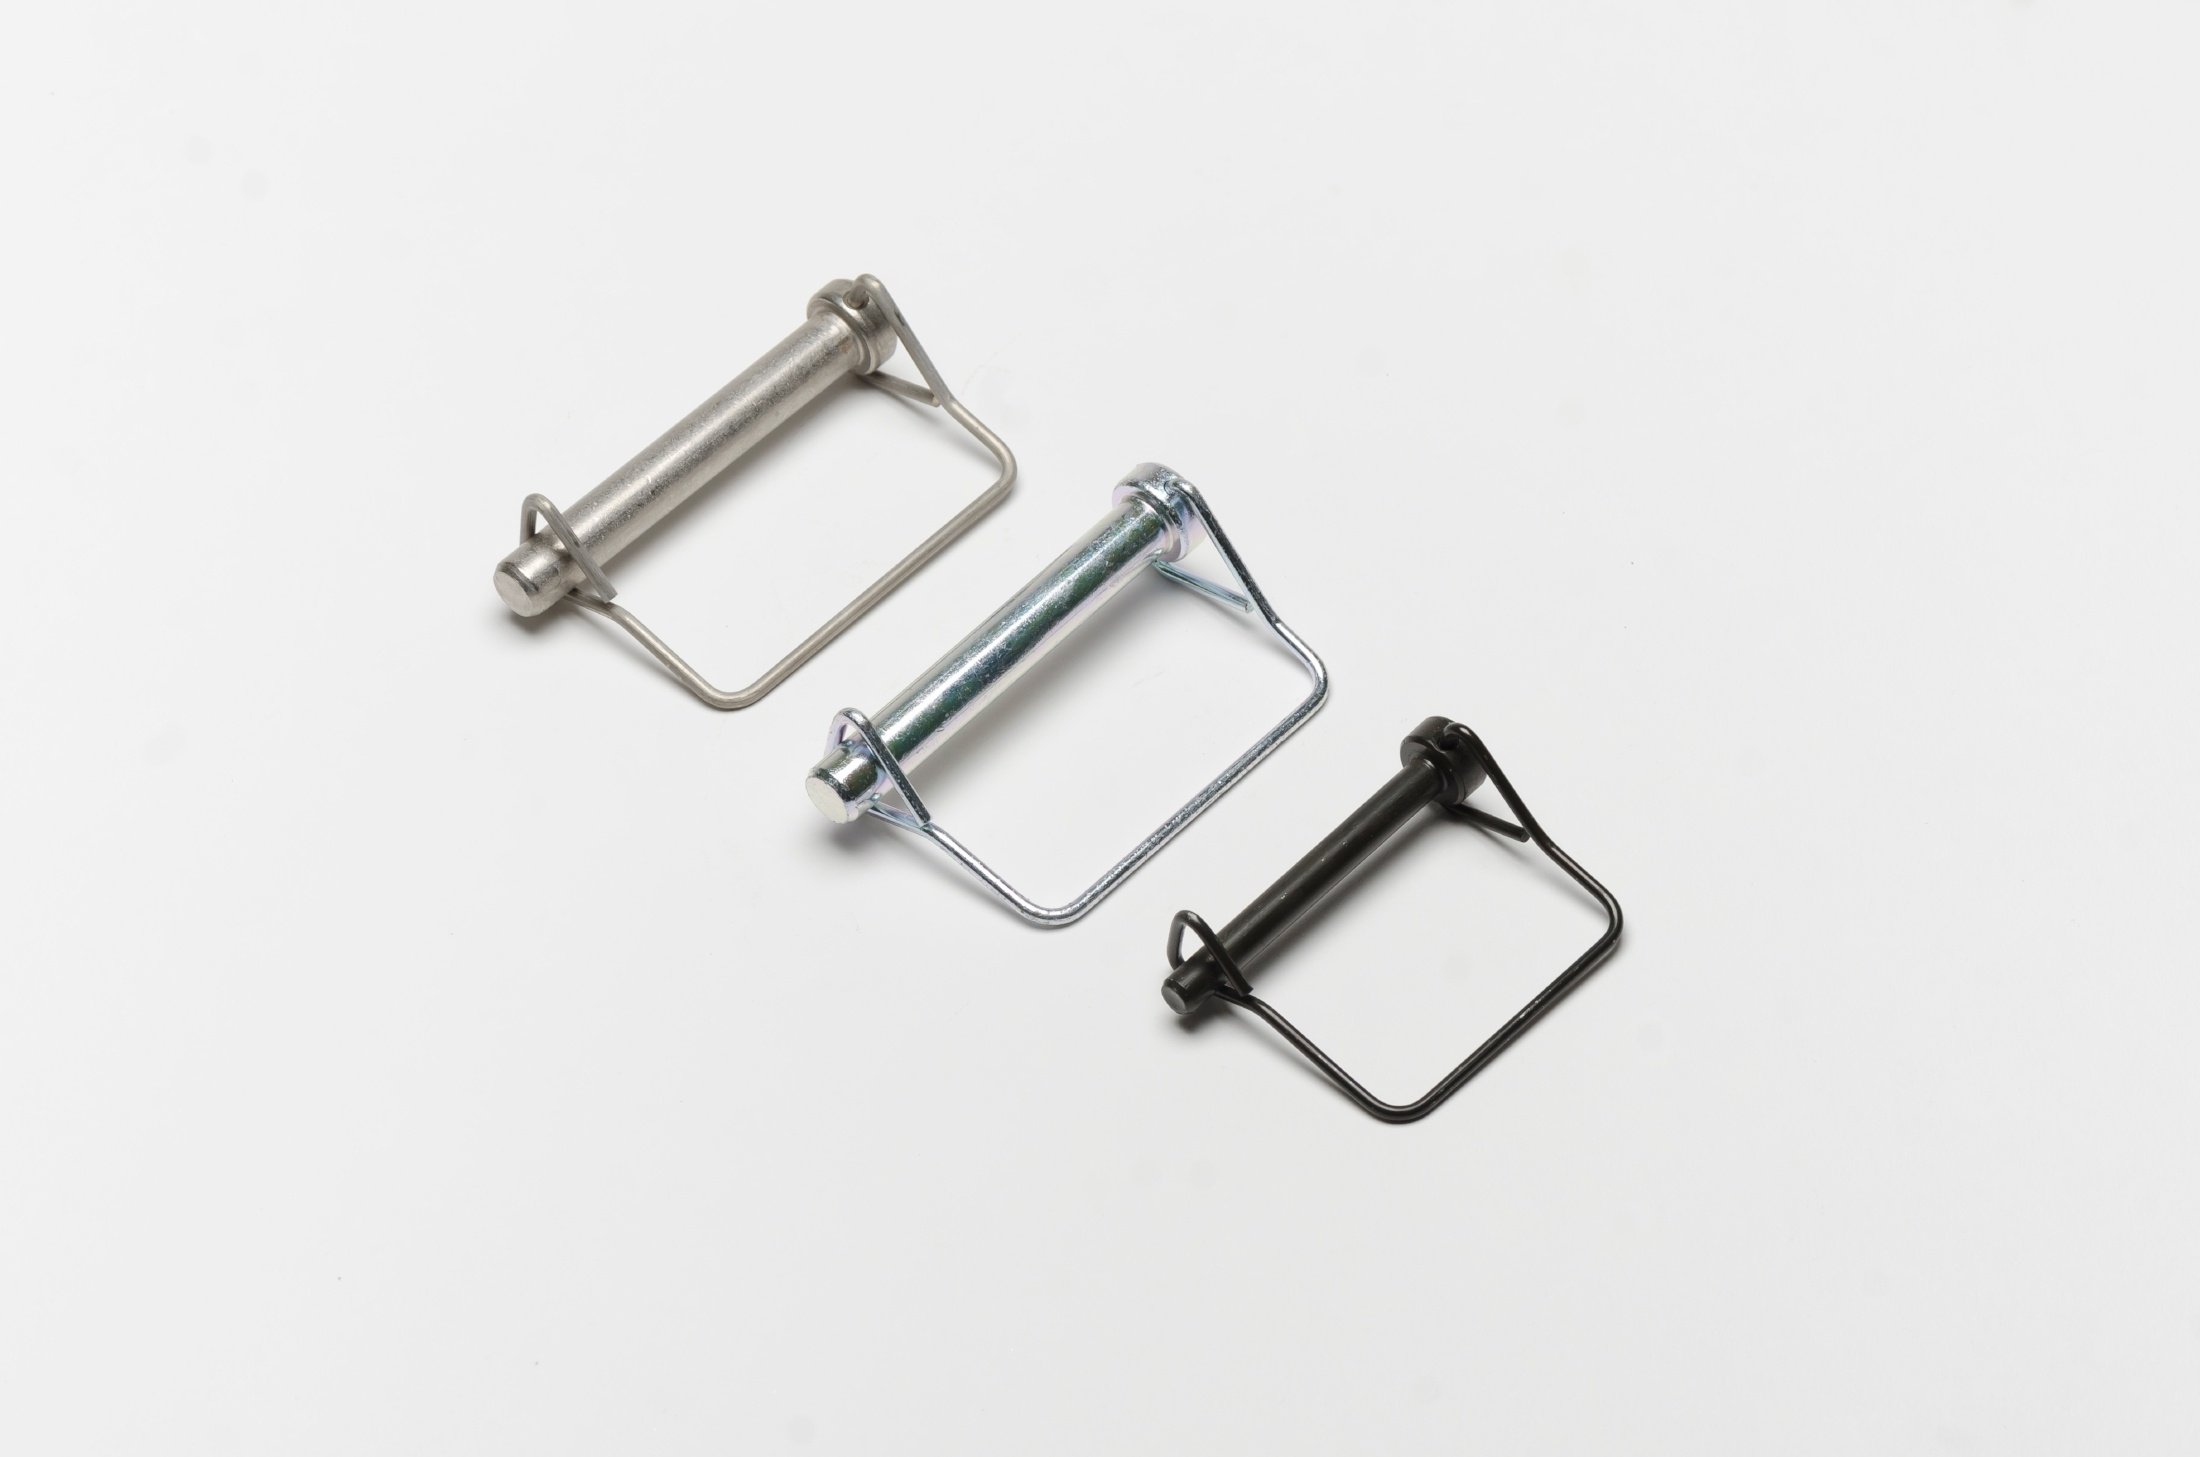 Colorful Wire Lock Pins Stainless Steel Ideas - Electrical System ...